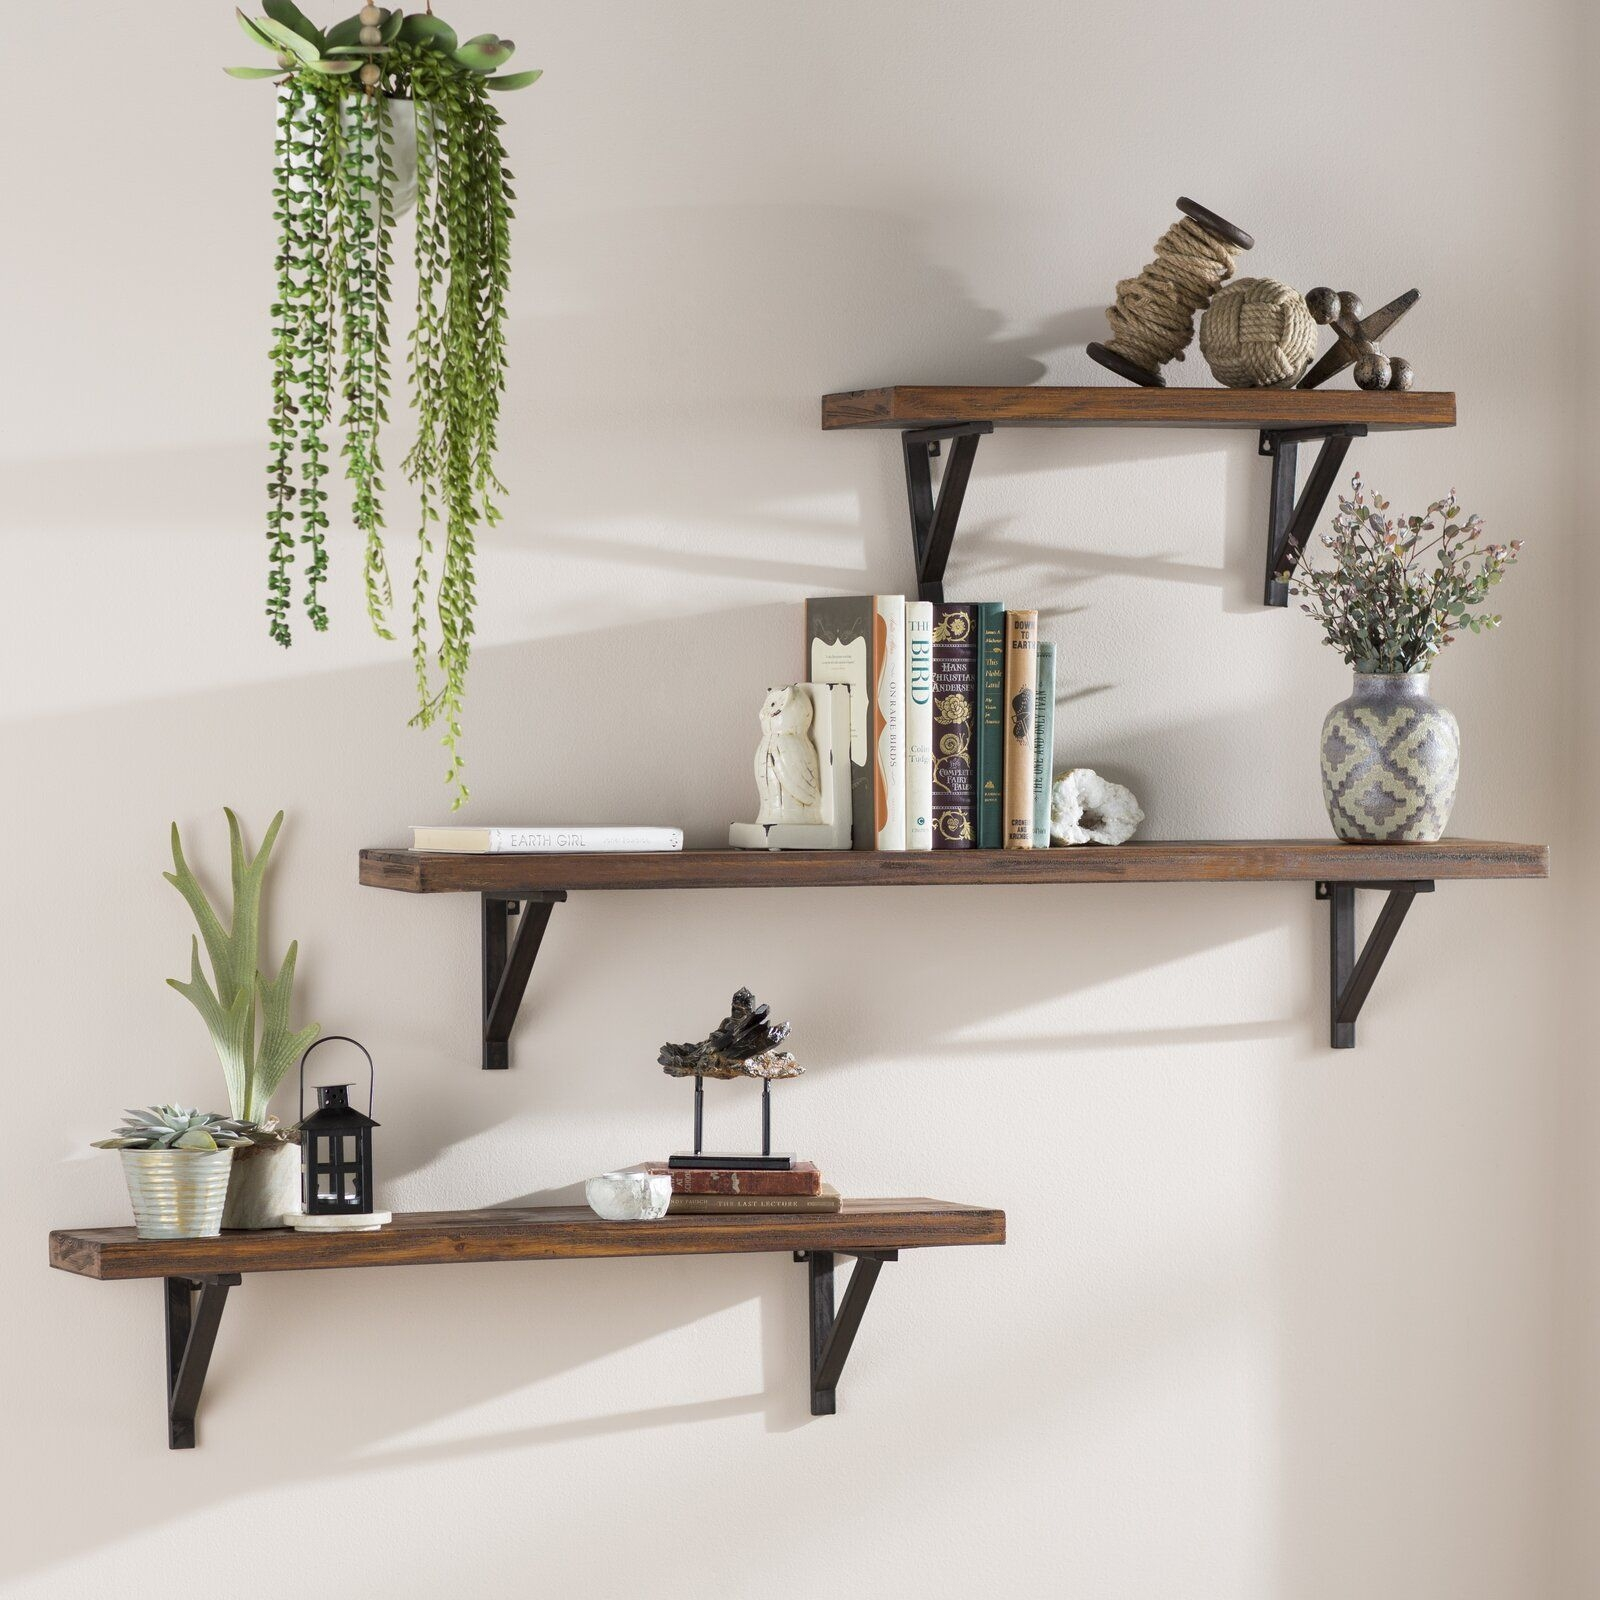 Loon Peak 3 Piece Wall Shelf Set  Reviews  Wayfair  Shelf Decor Bedroom Shelves In Bedroom